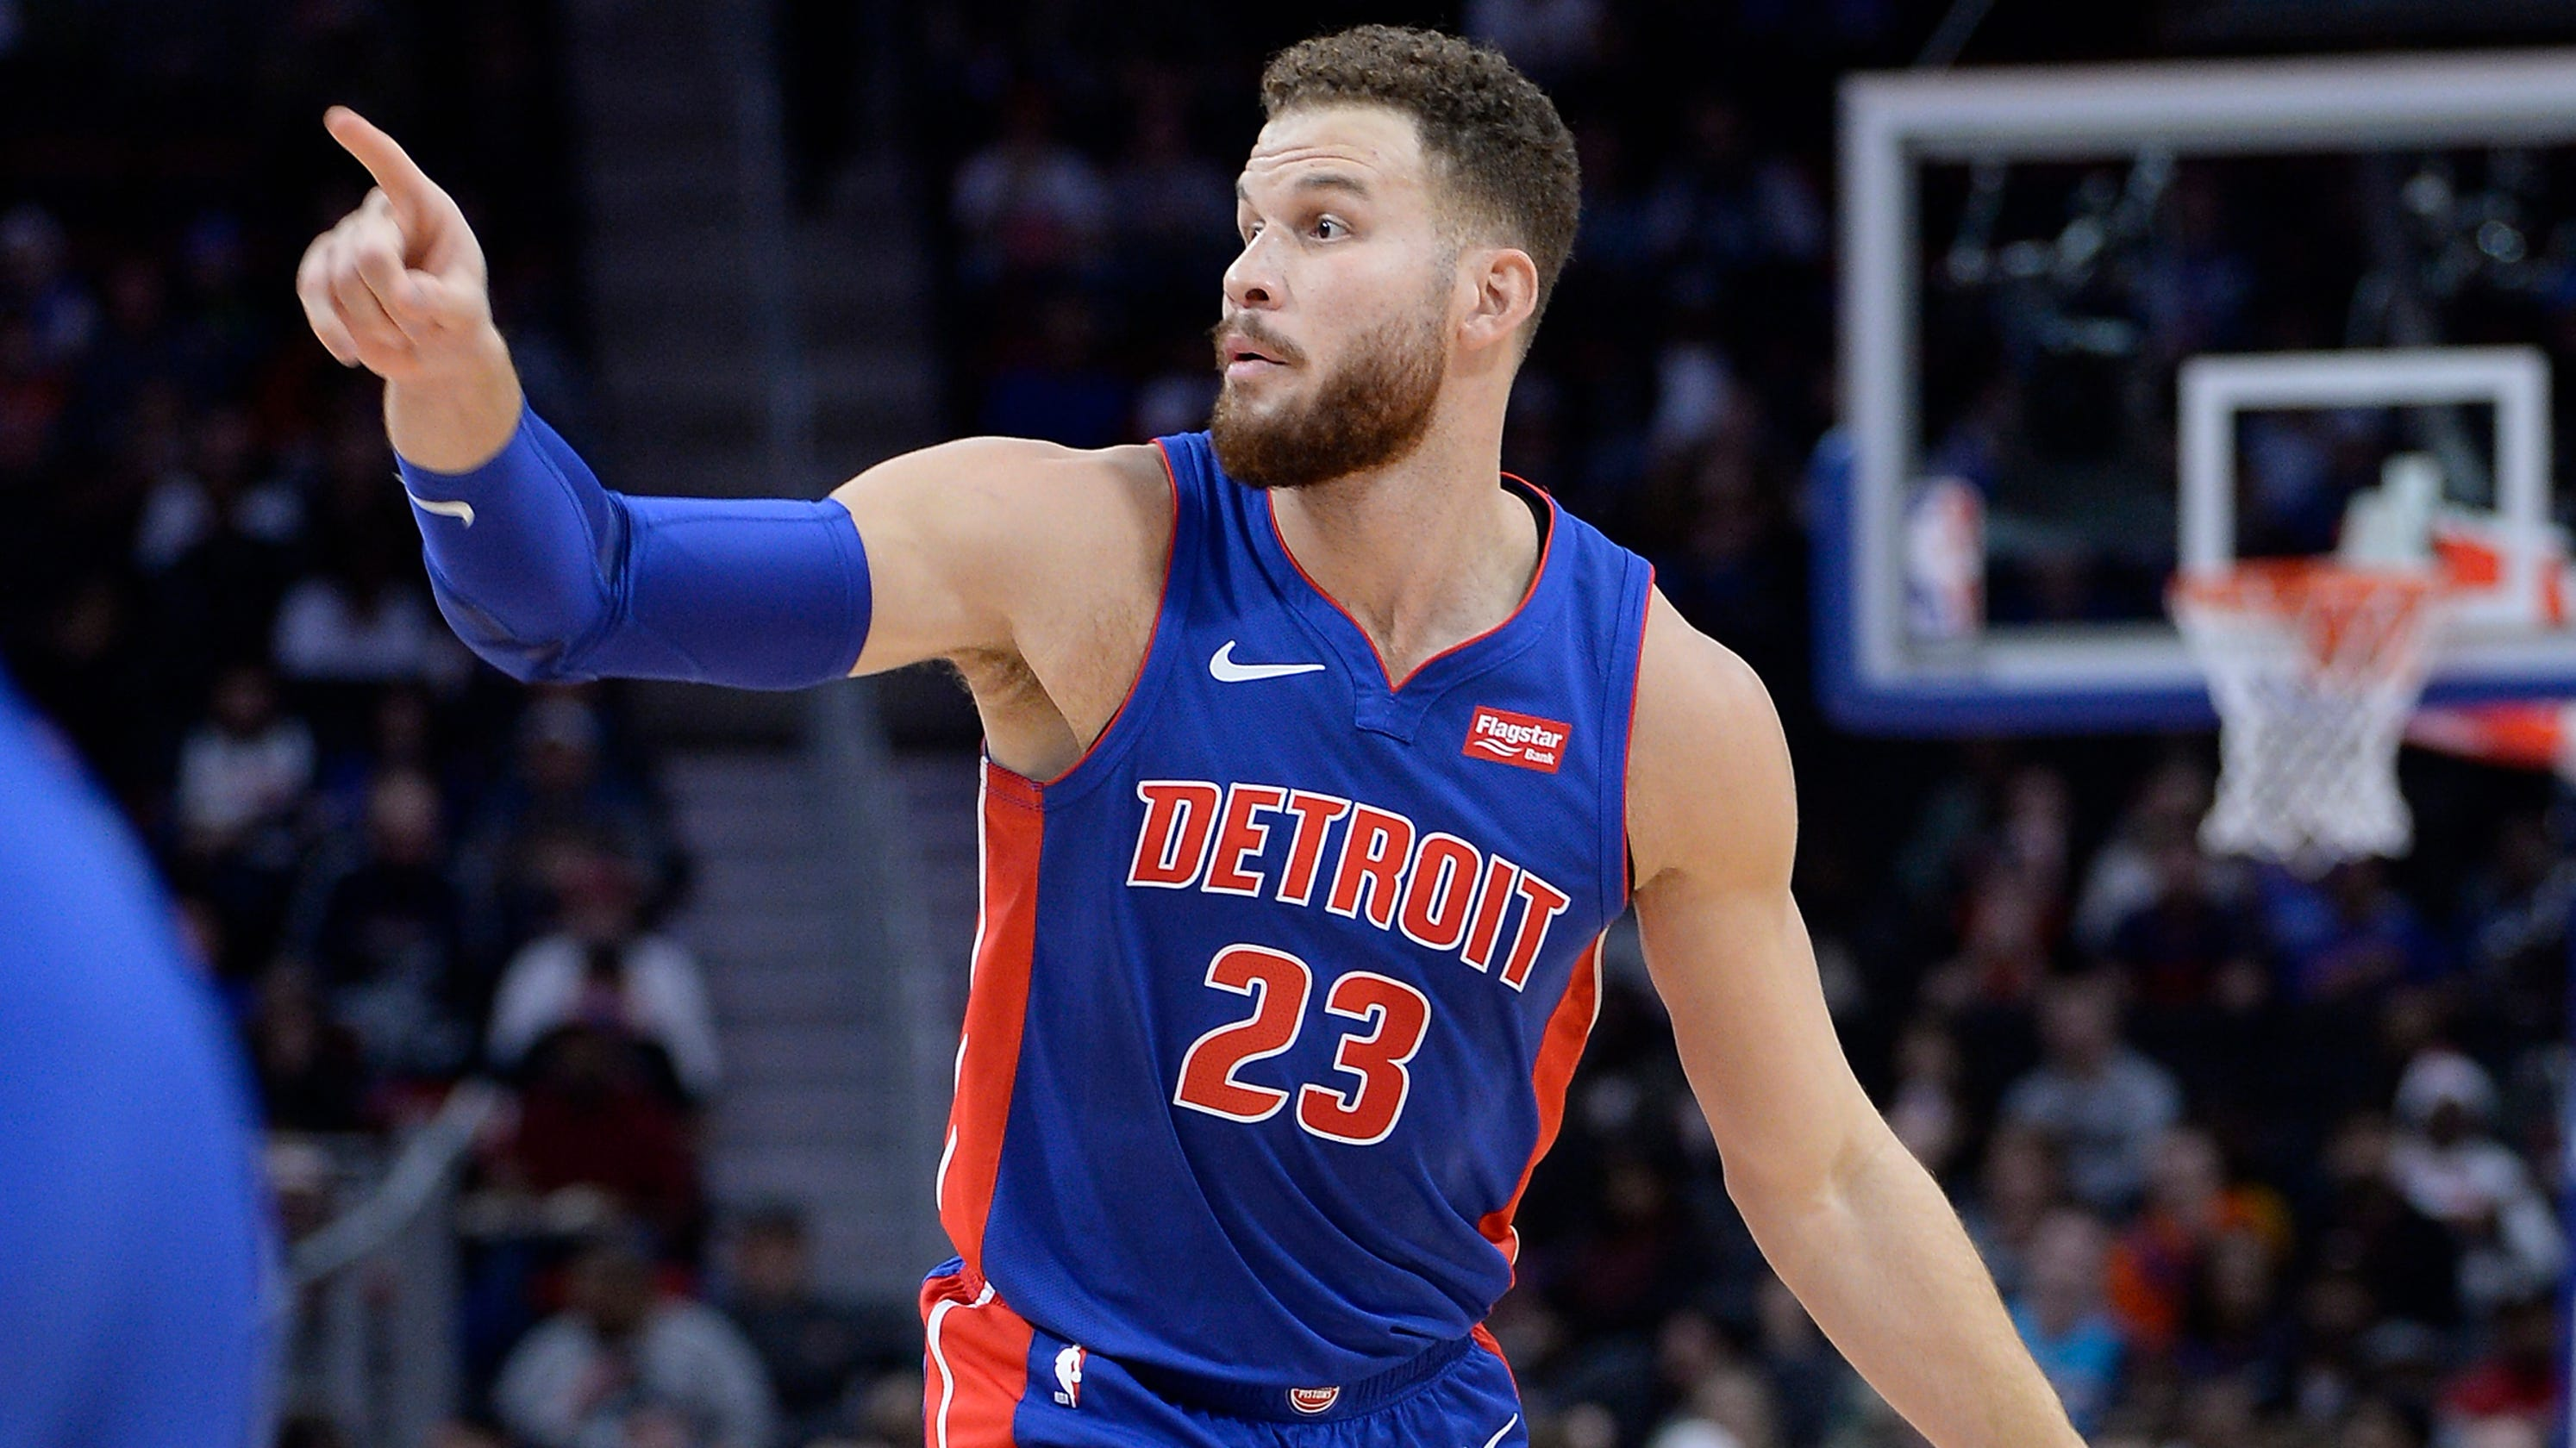 d3f4f47ec47 Pistons' Blake Griffin is inactive for Game 2